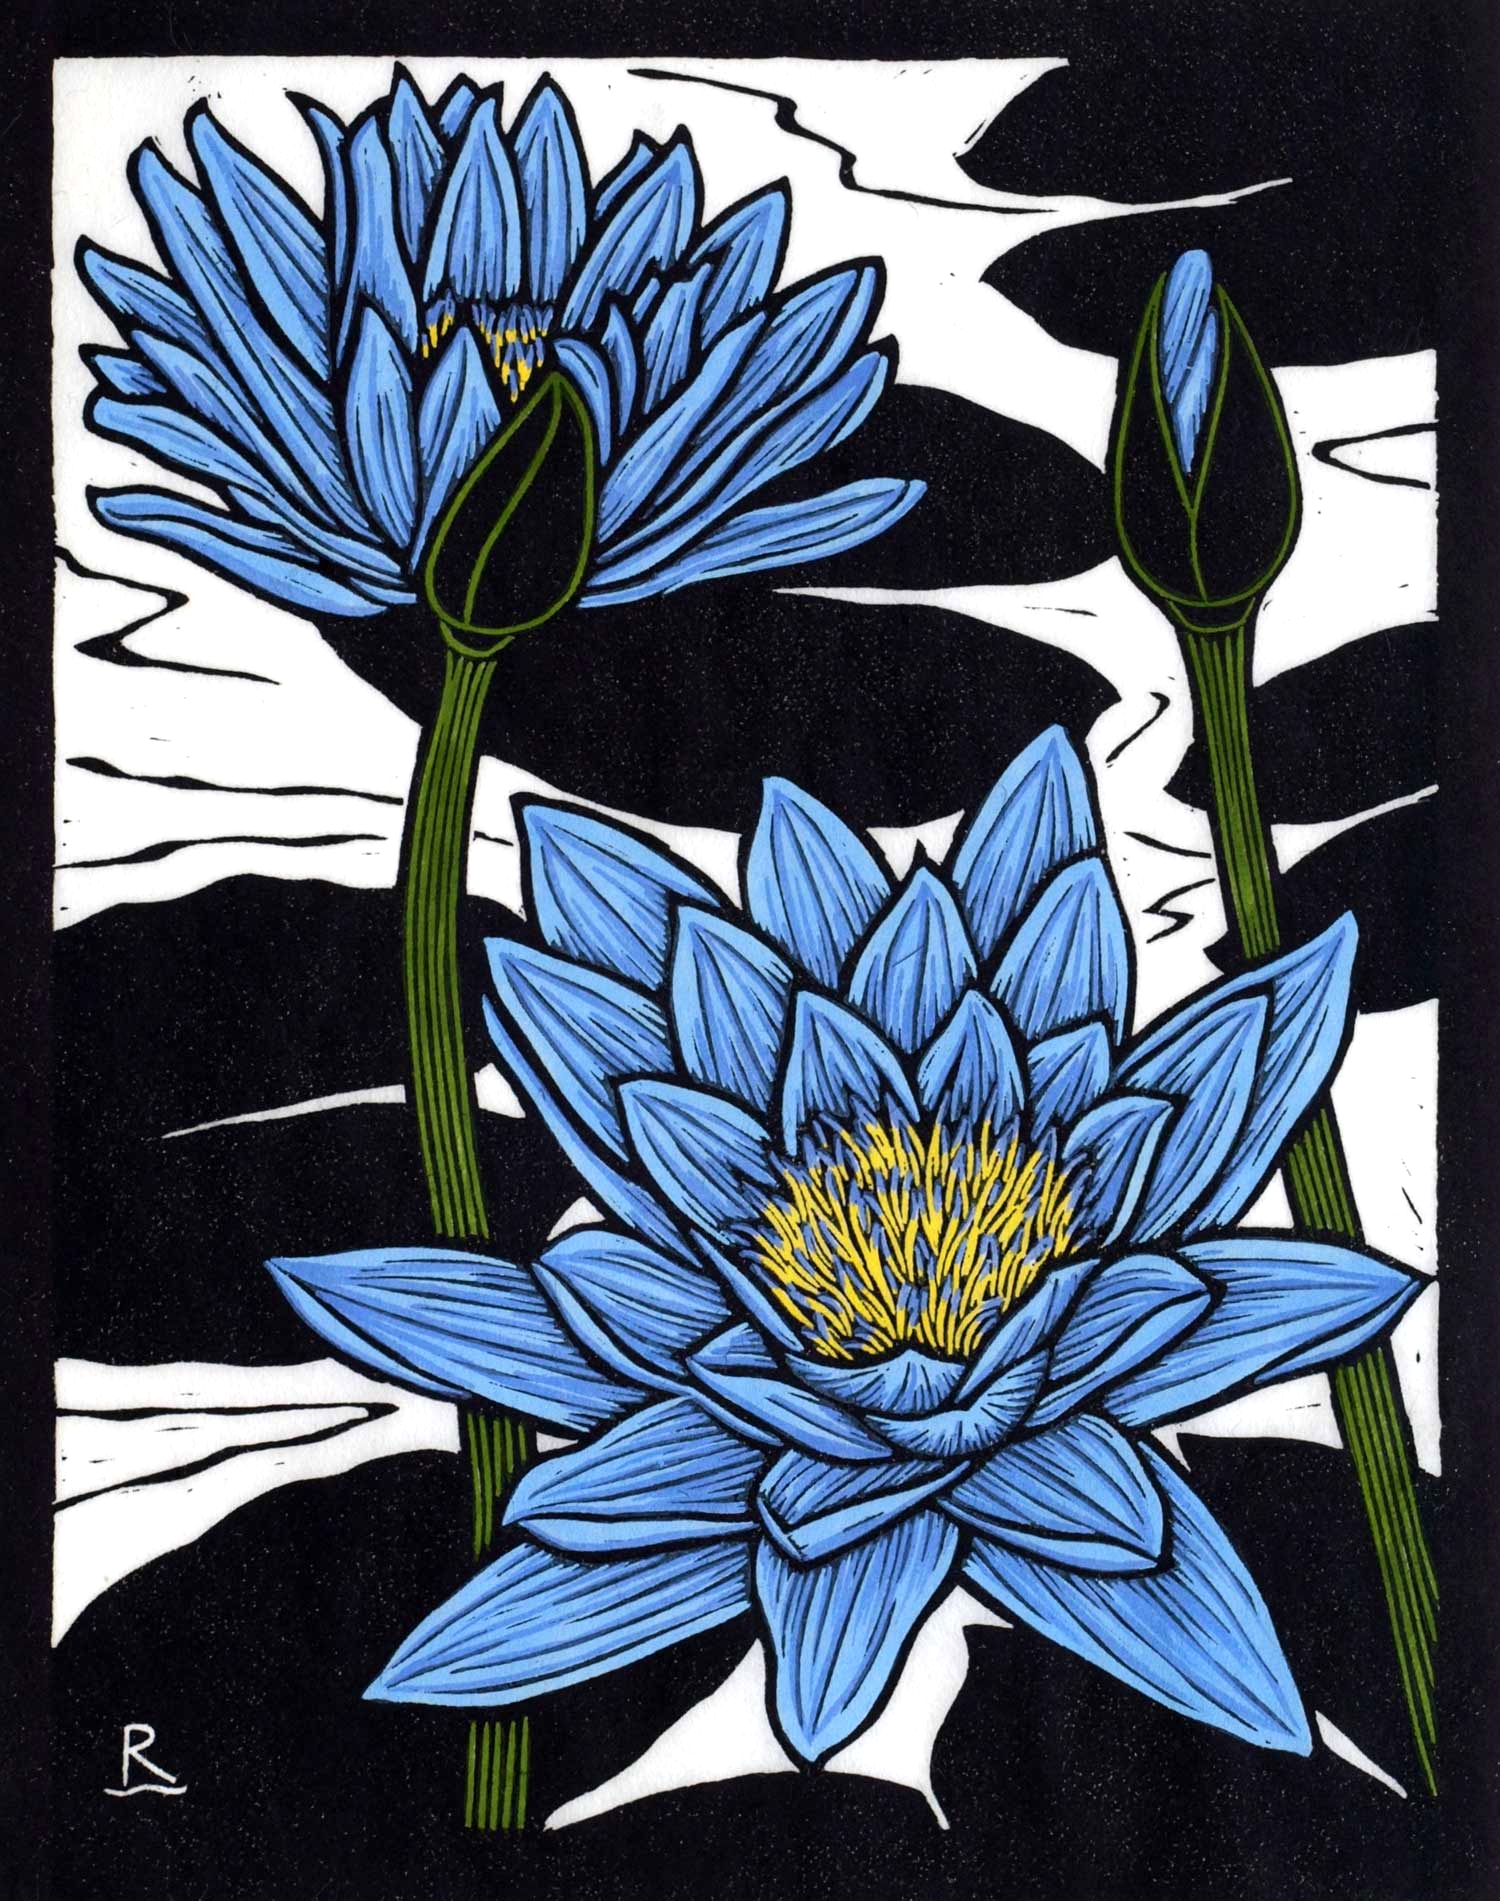 BLUE WATERLILY  28 X 22 CM EDITION OF 50  HAND COLOURED LINOCUT ON HANDMADE JAPANESE PAPER  $600